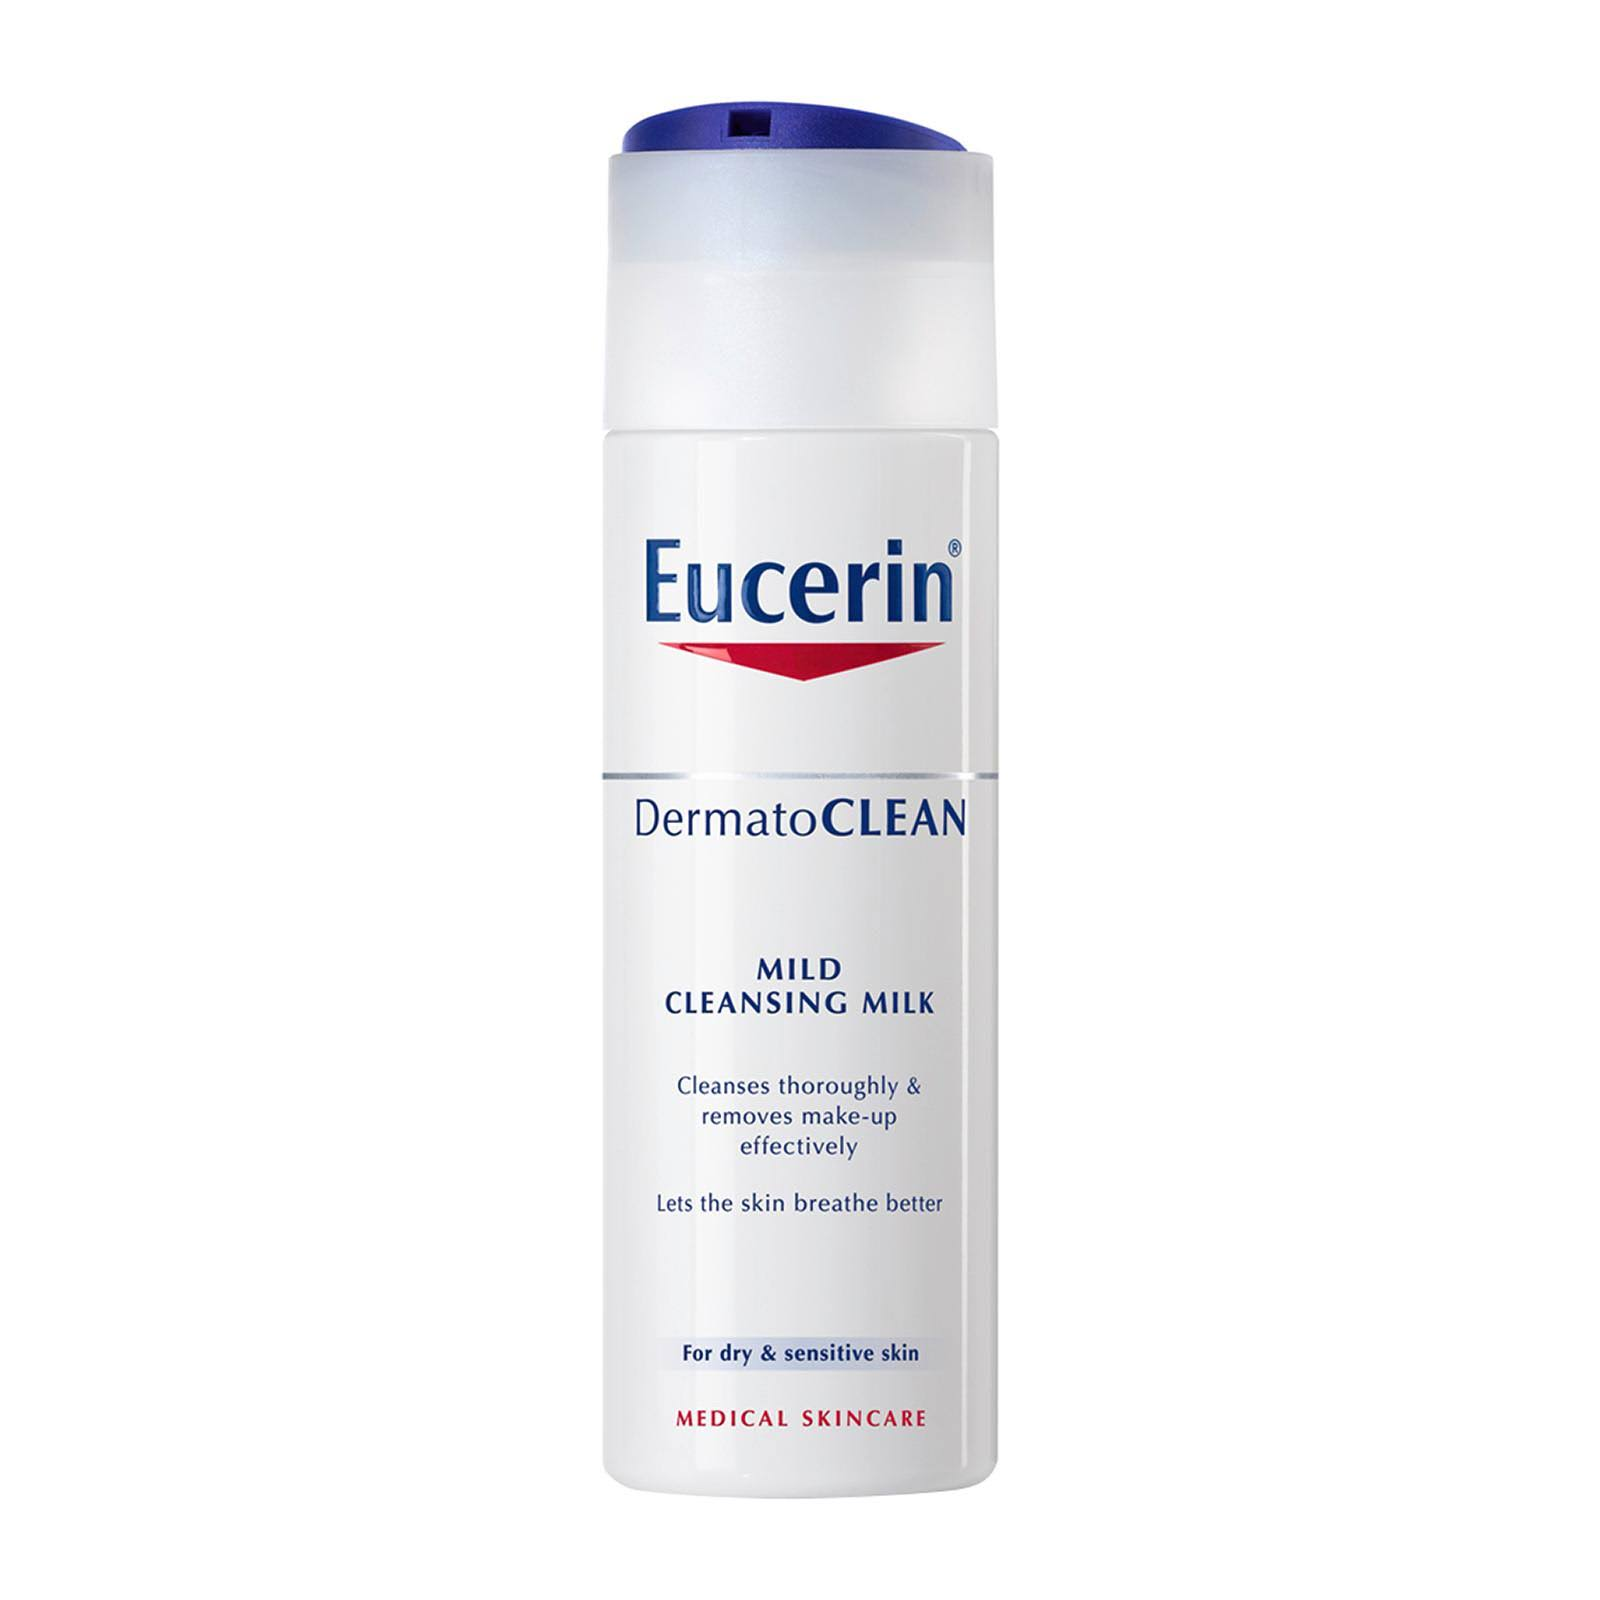 Eucerin DermatoClean Cleansing Milk - Mild, 200ml